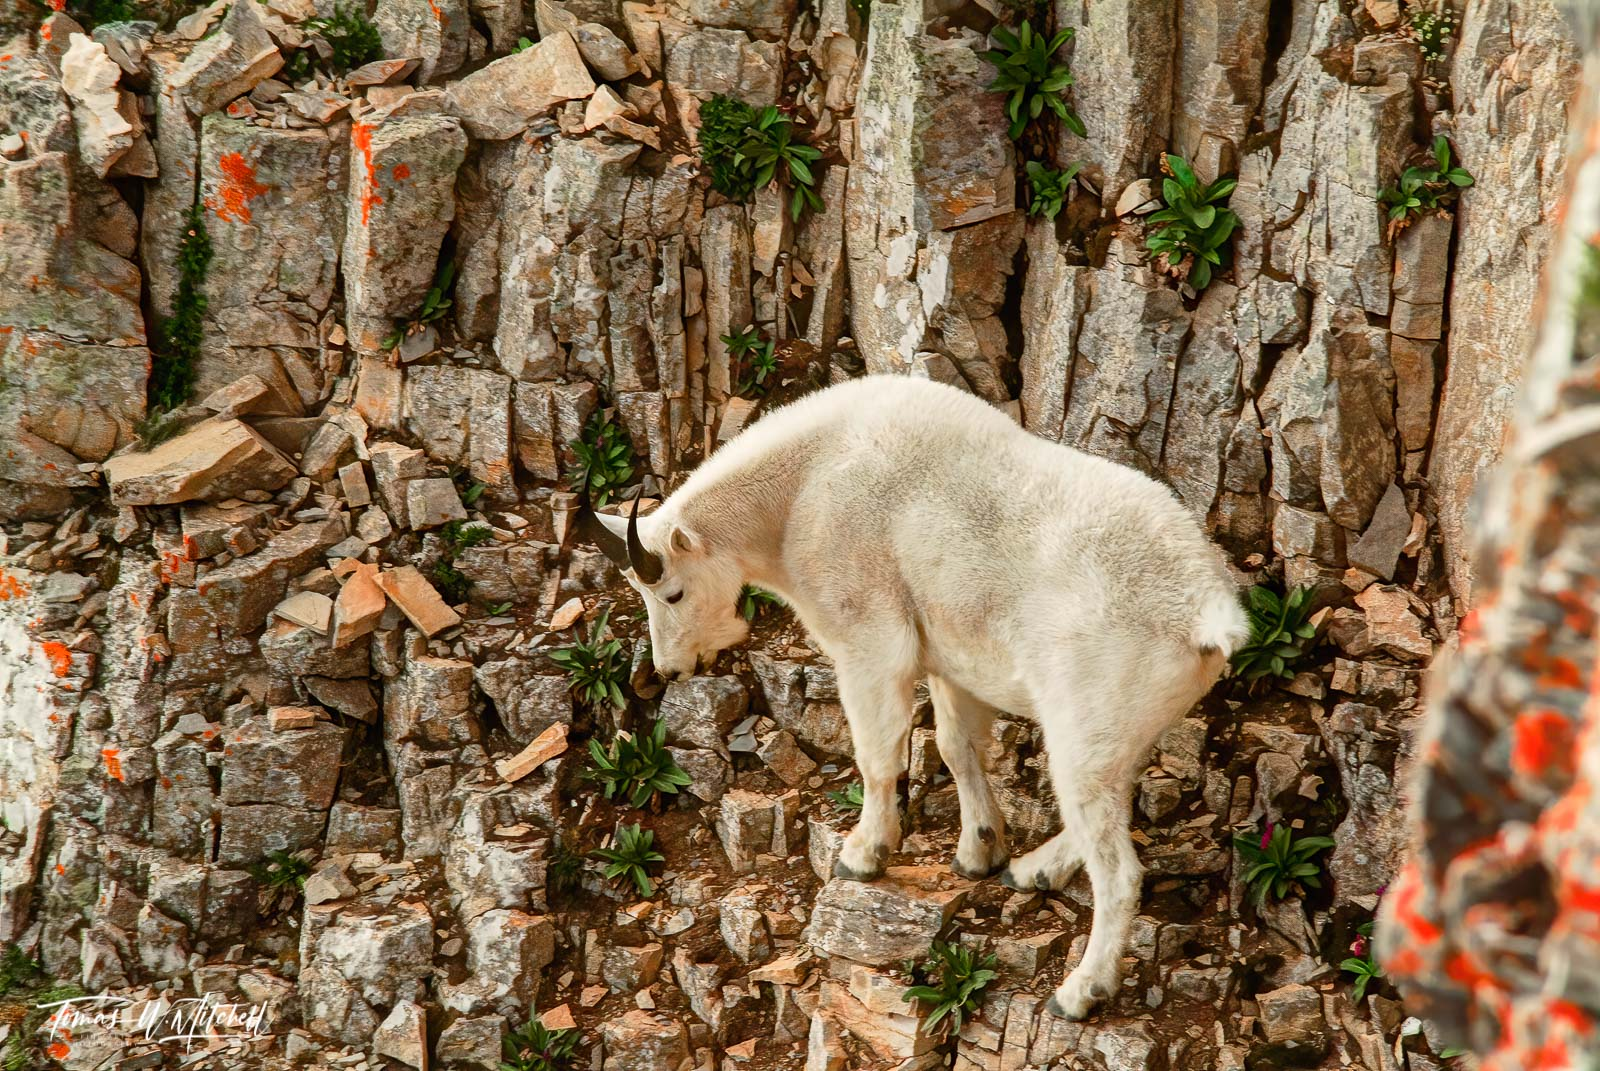 limited edition, fine art, prints, mount timpanogos, utah, mountain goat, wildlife, photographing, rock face, cliff, photograph, , photo